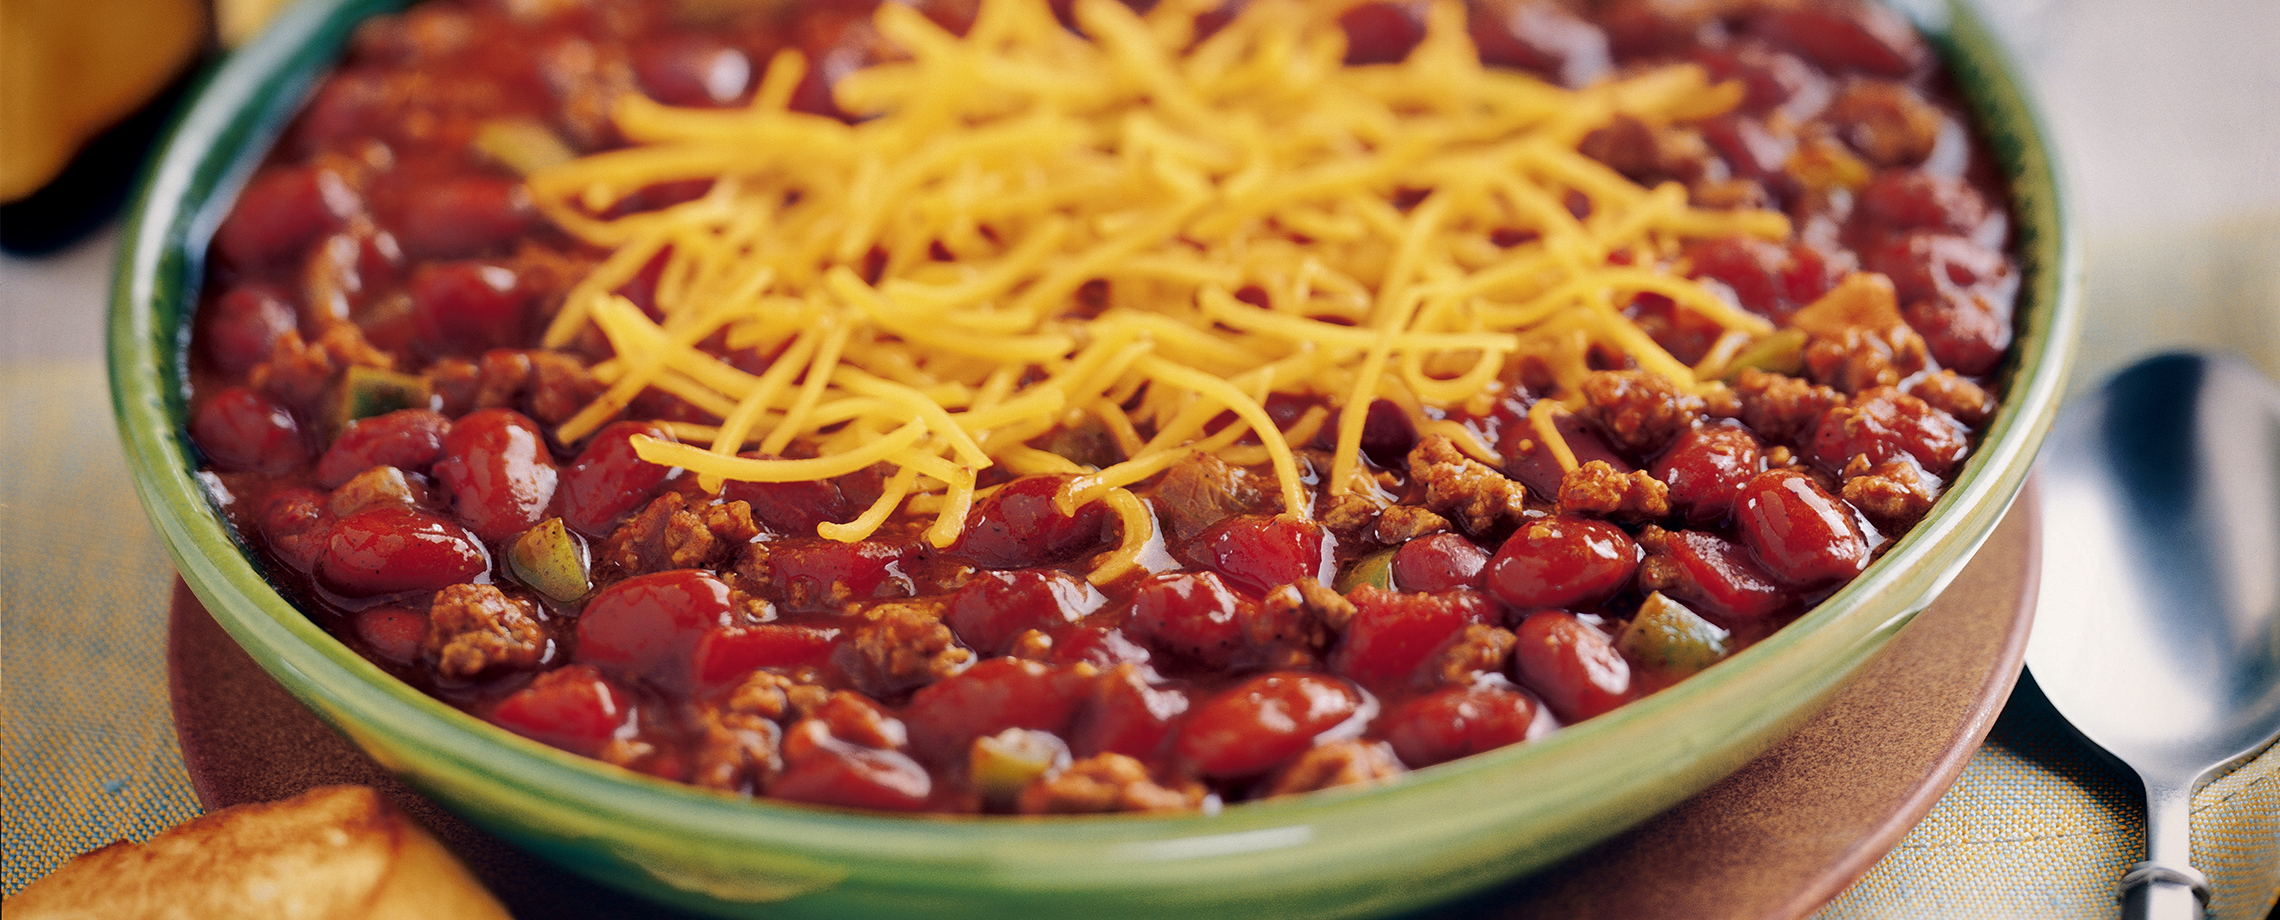 Variety Of Bush's Beans Only $0.24 At ShopRite With Coupon + Delicious Chili Recipe!